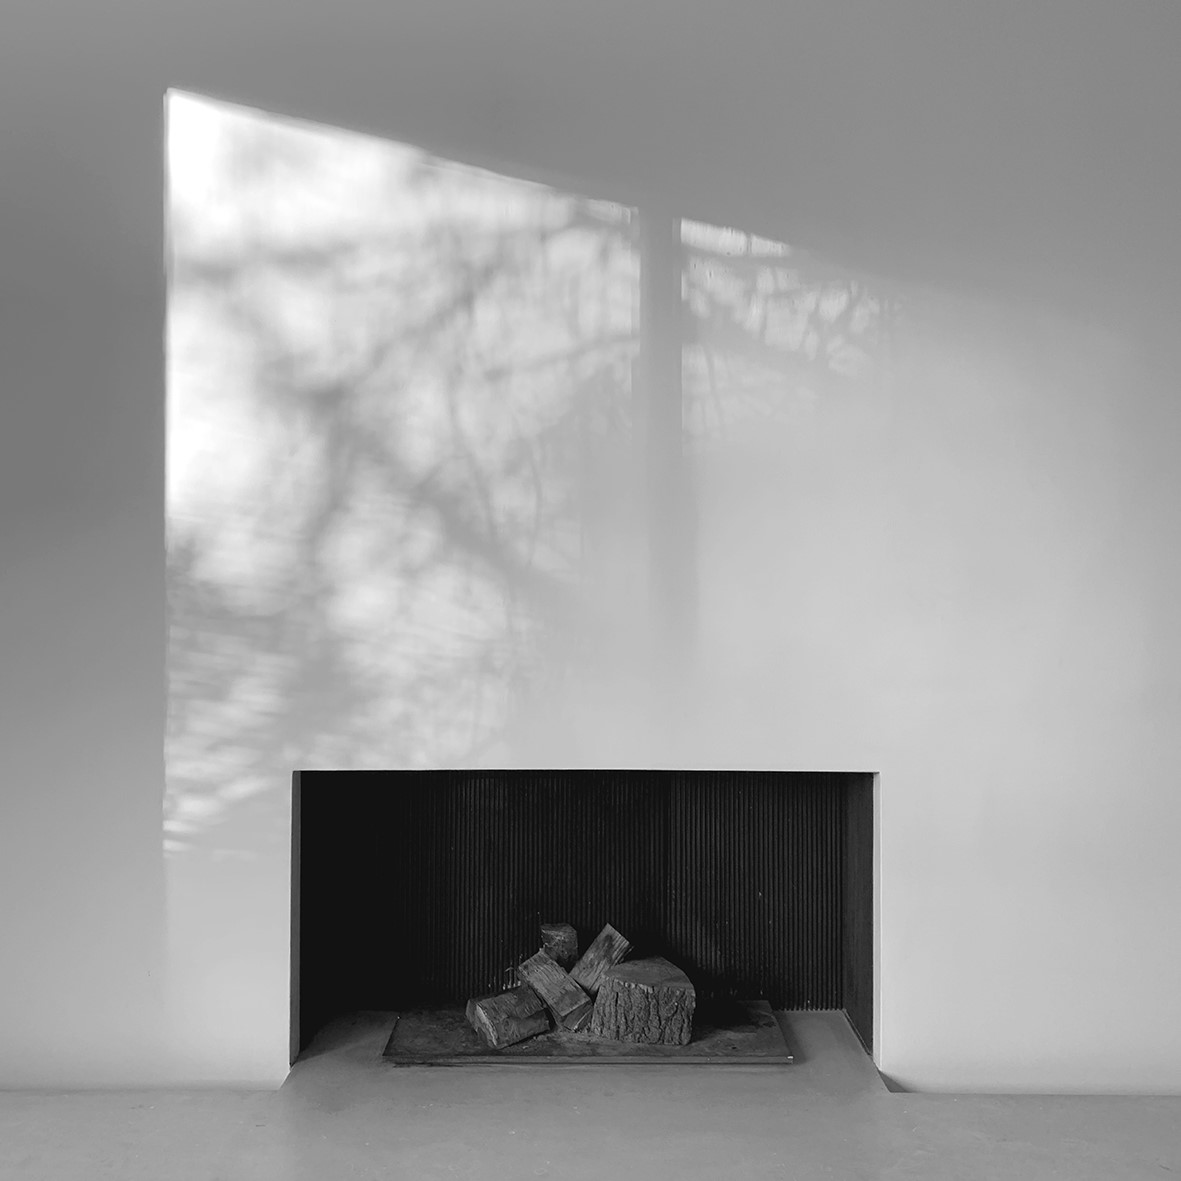 Fire place photographed in black and white with light and shadow on wall